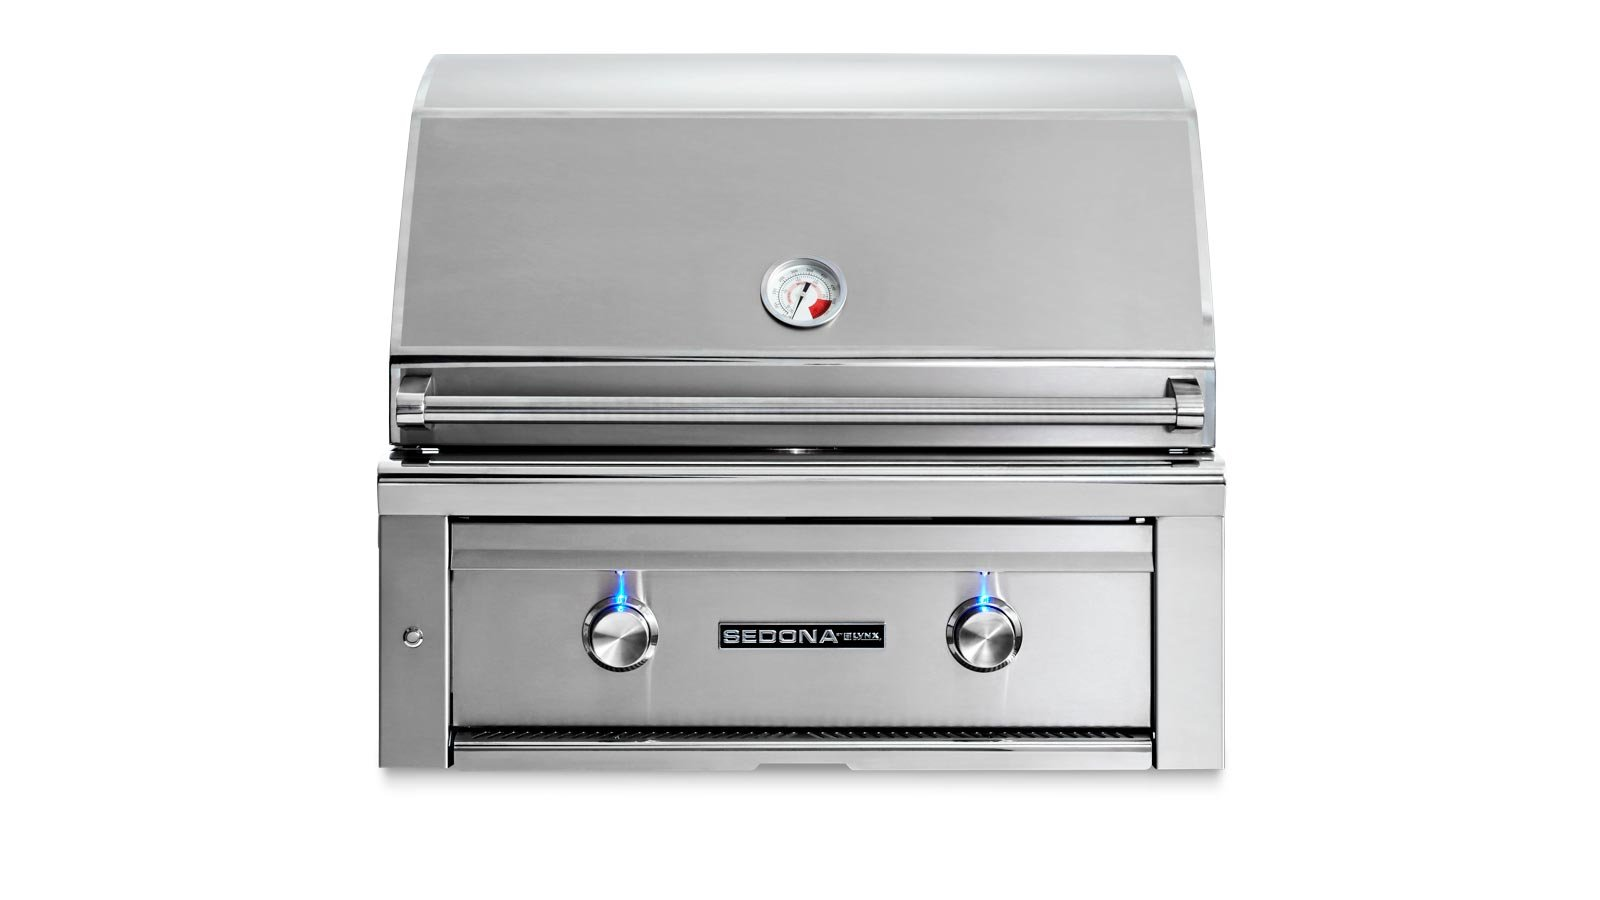 hight resolution of 30 sedona built in grill with 2 stainless steel burners l500 cat body diagram lynx grill wiring diagram